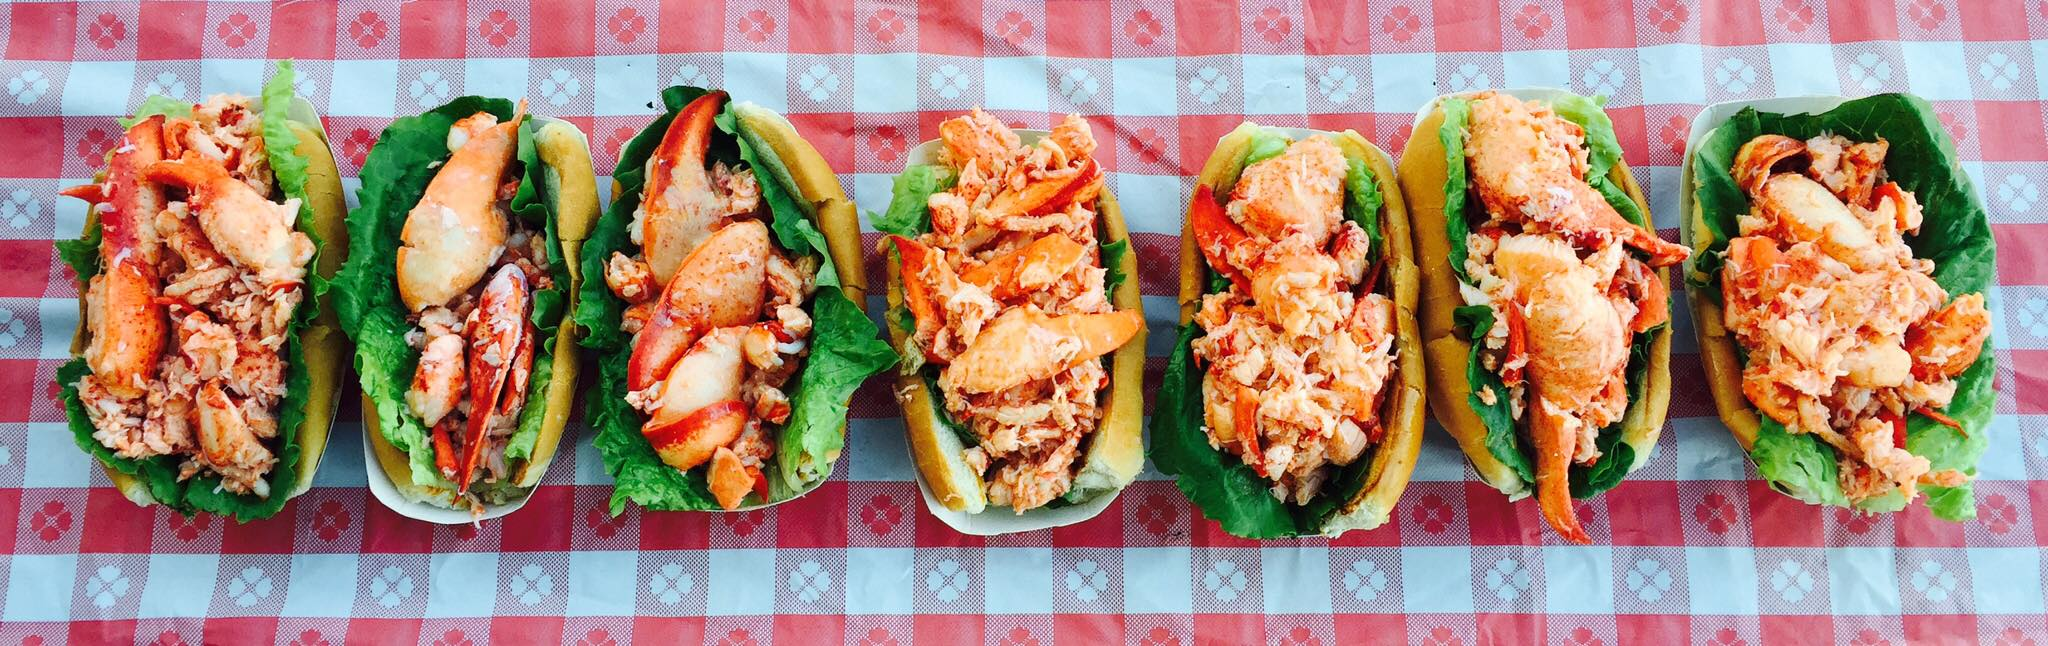 The Barking Claw Lobster Roll